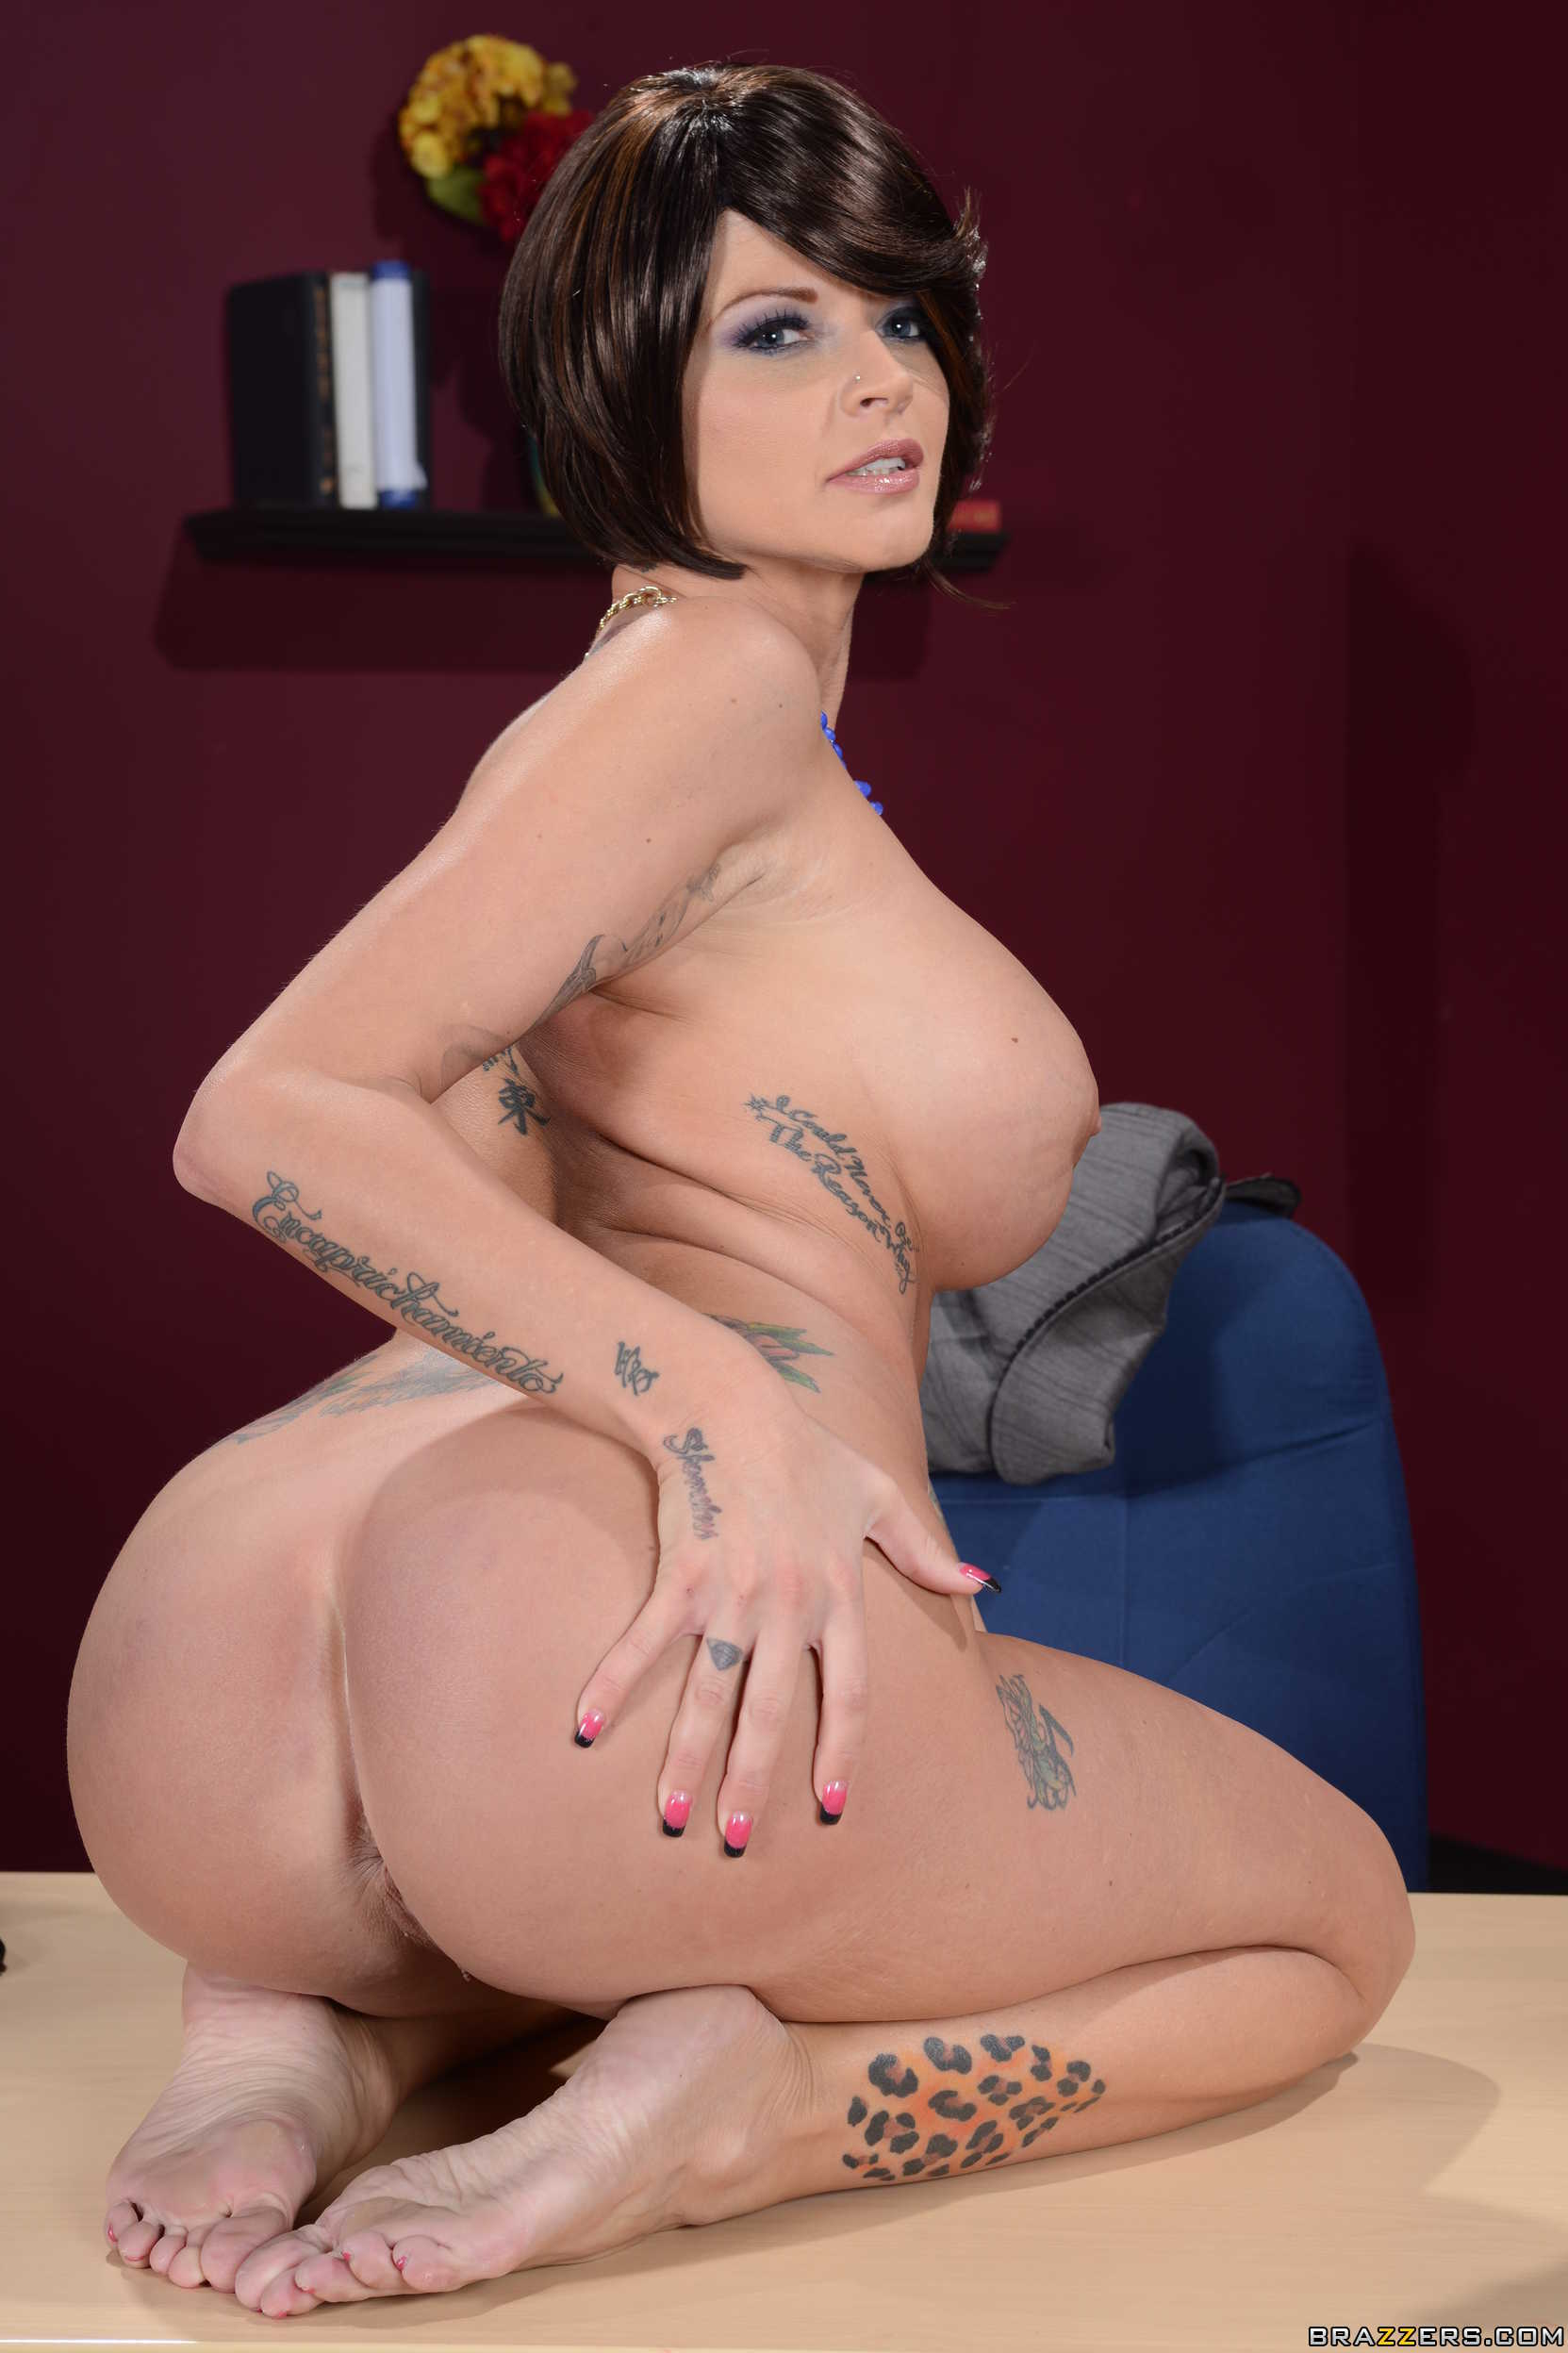 Milf joslyn pictures absolutely